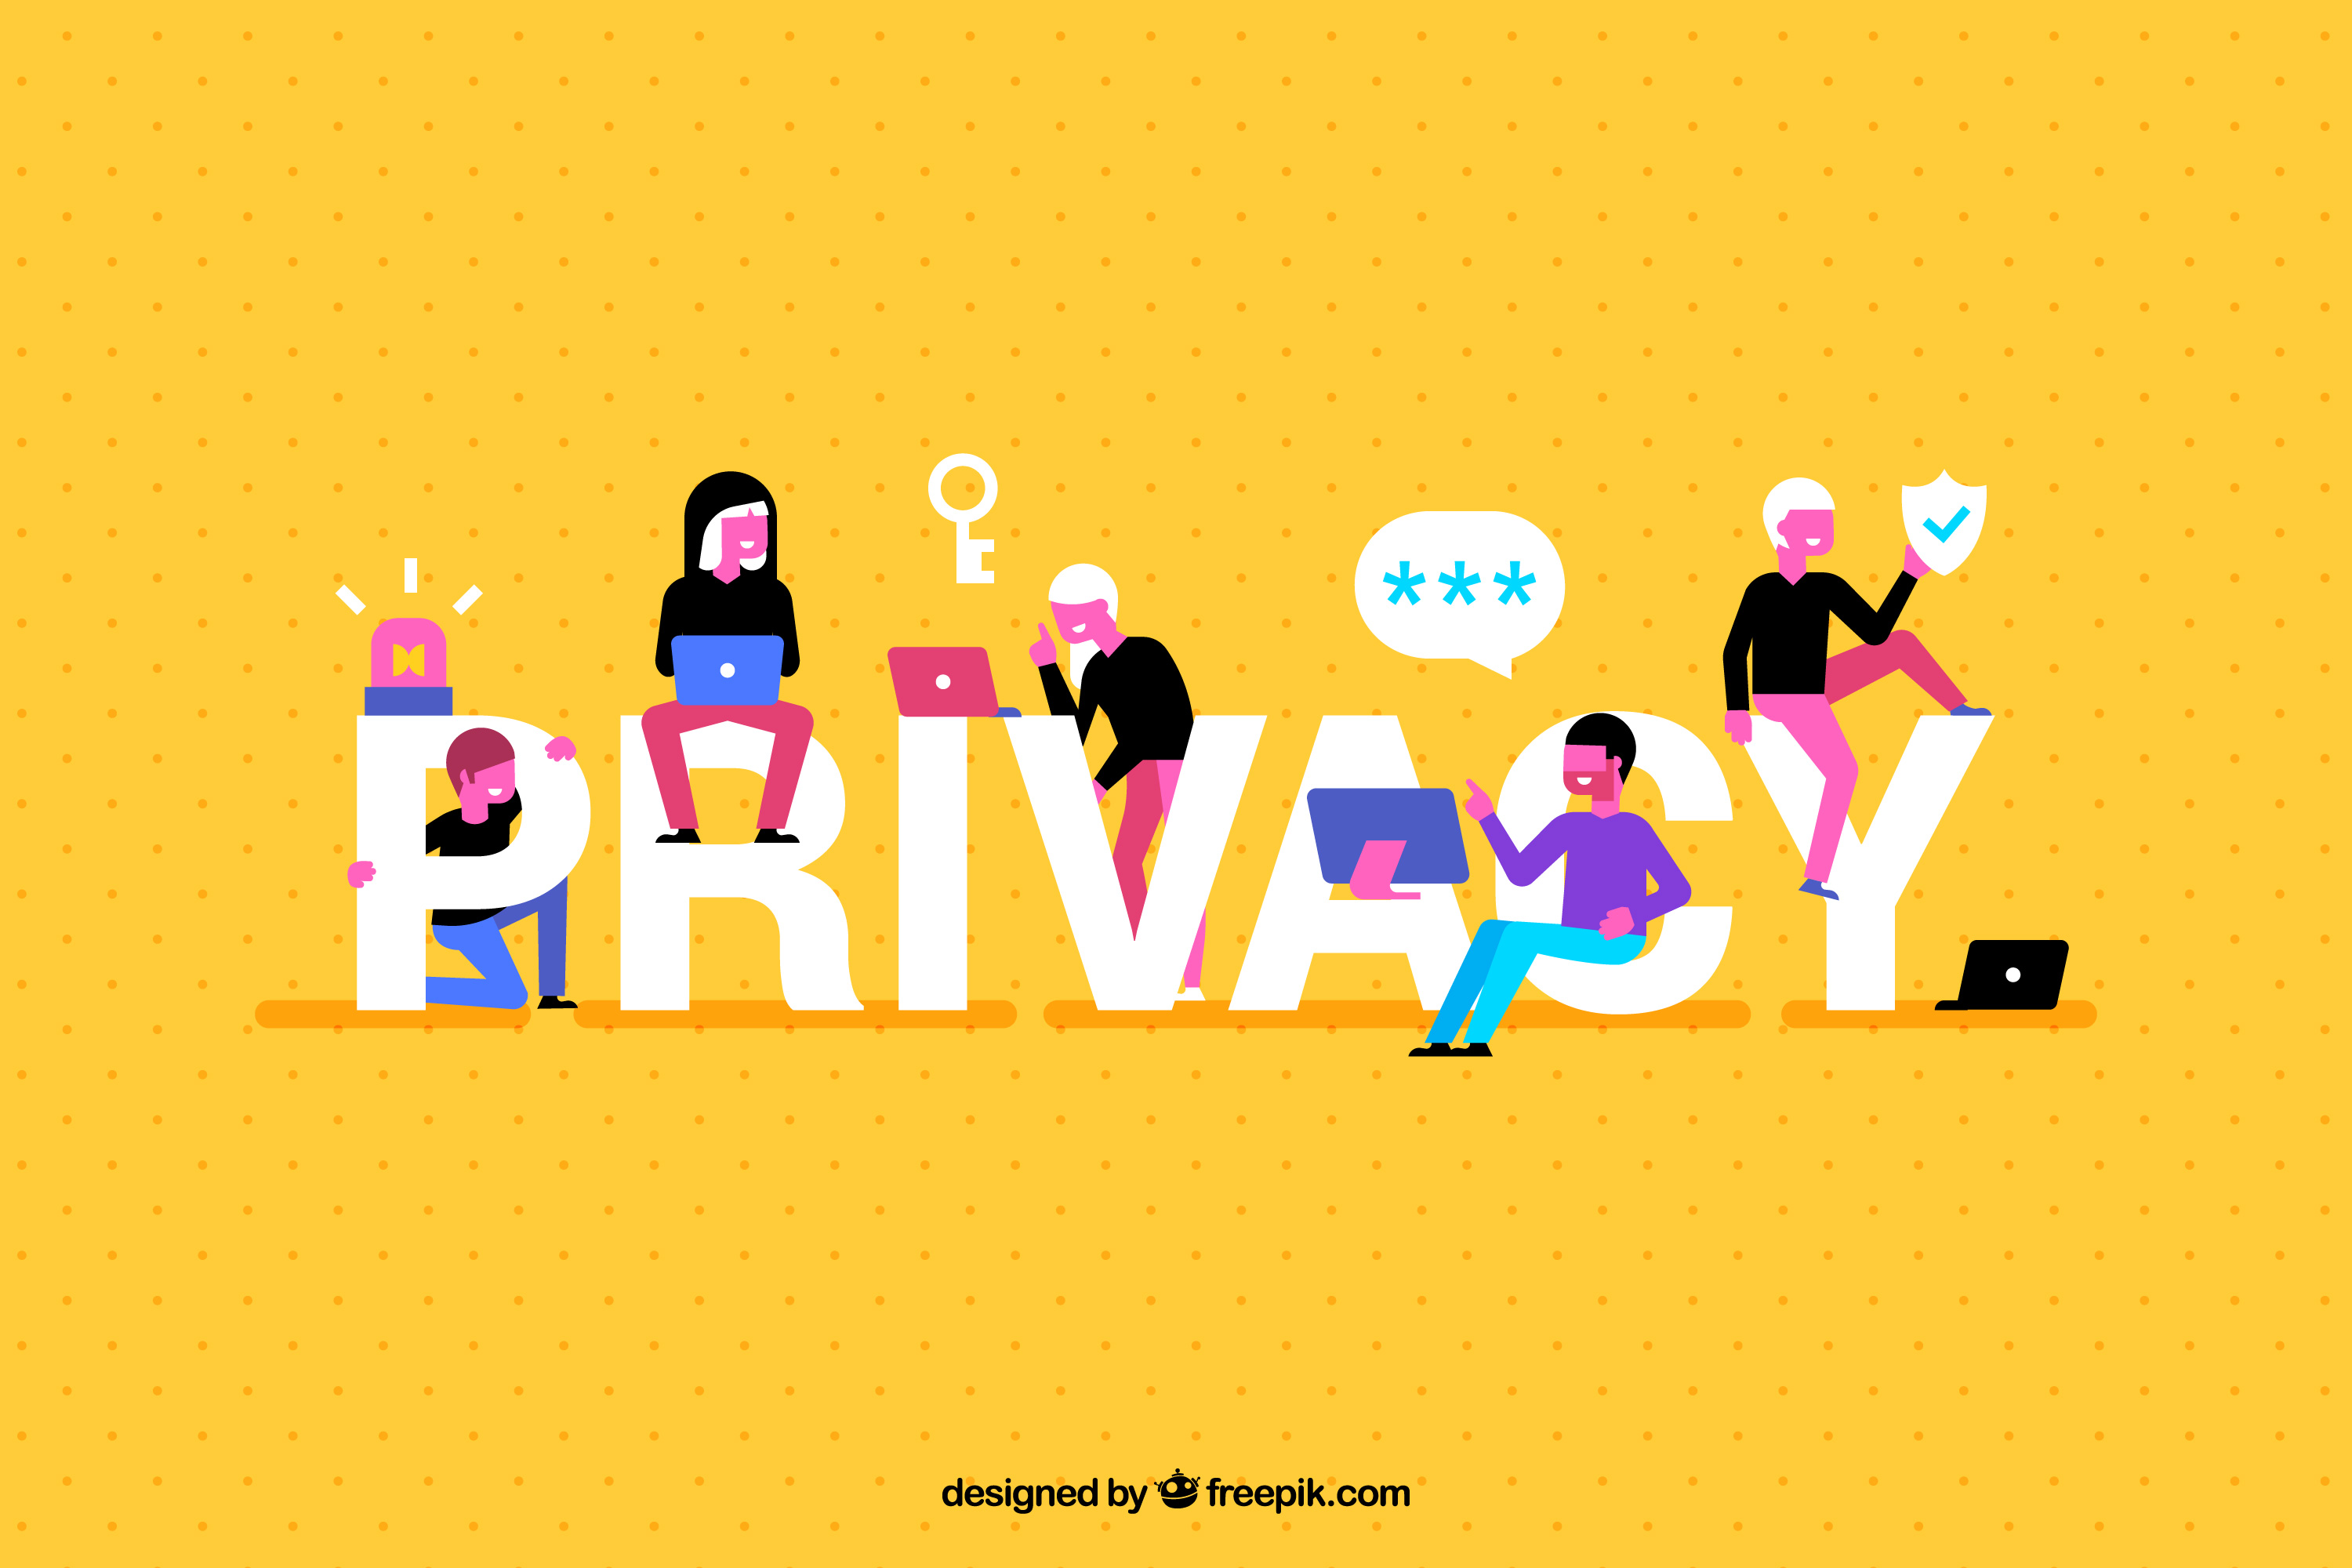 data privacy company